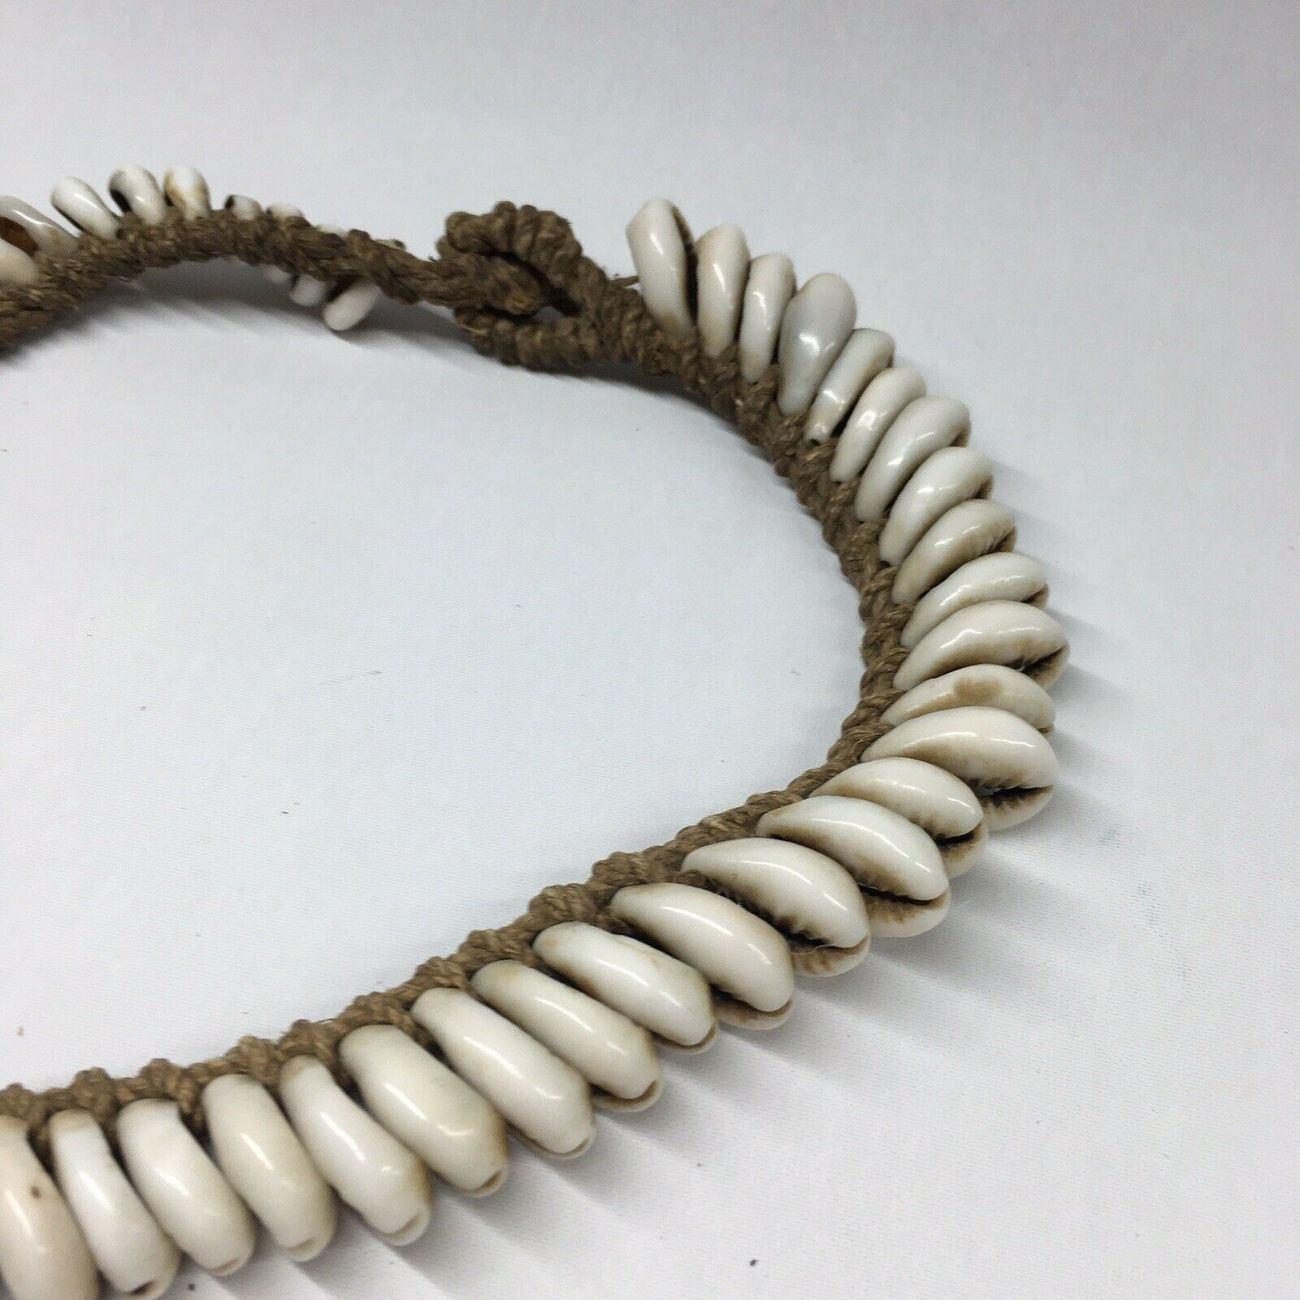 Crowrie shell necklace